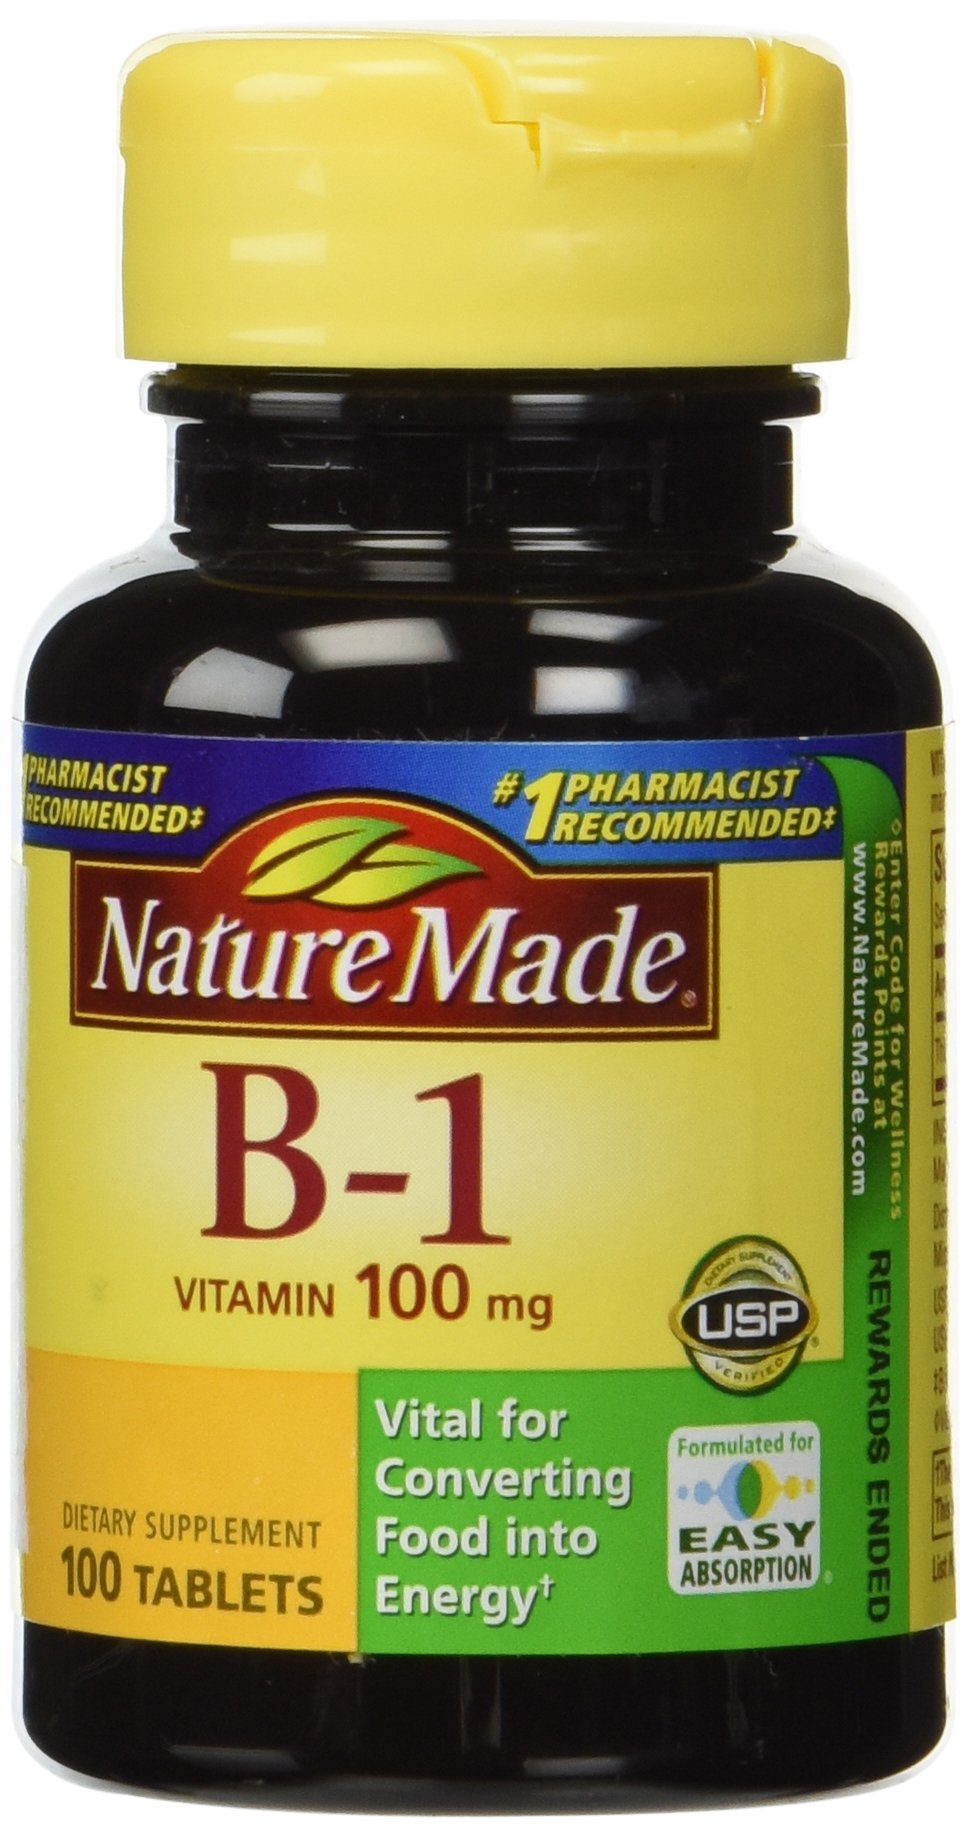 Nature Made Vitamin B-1 100 mg, 100 Tablets (Pack of 3)